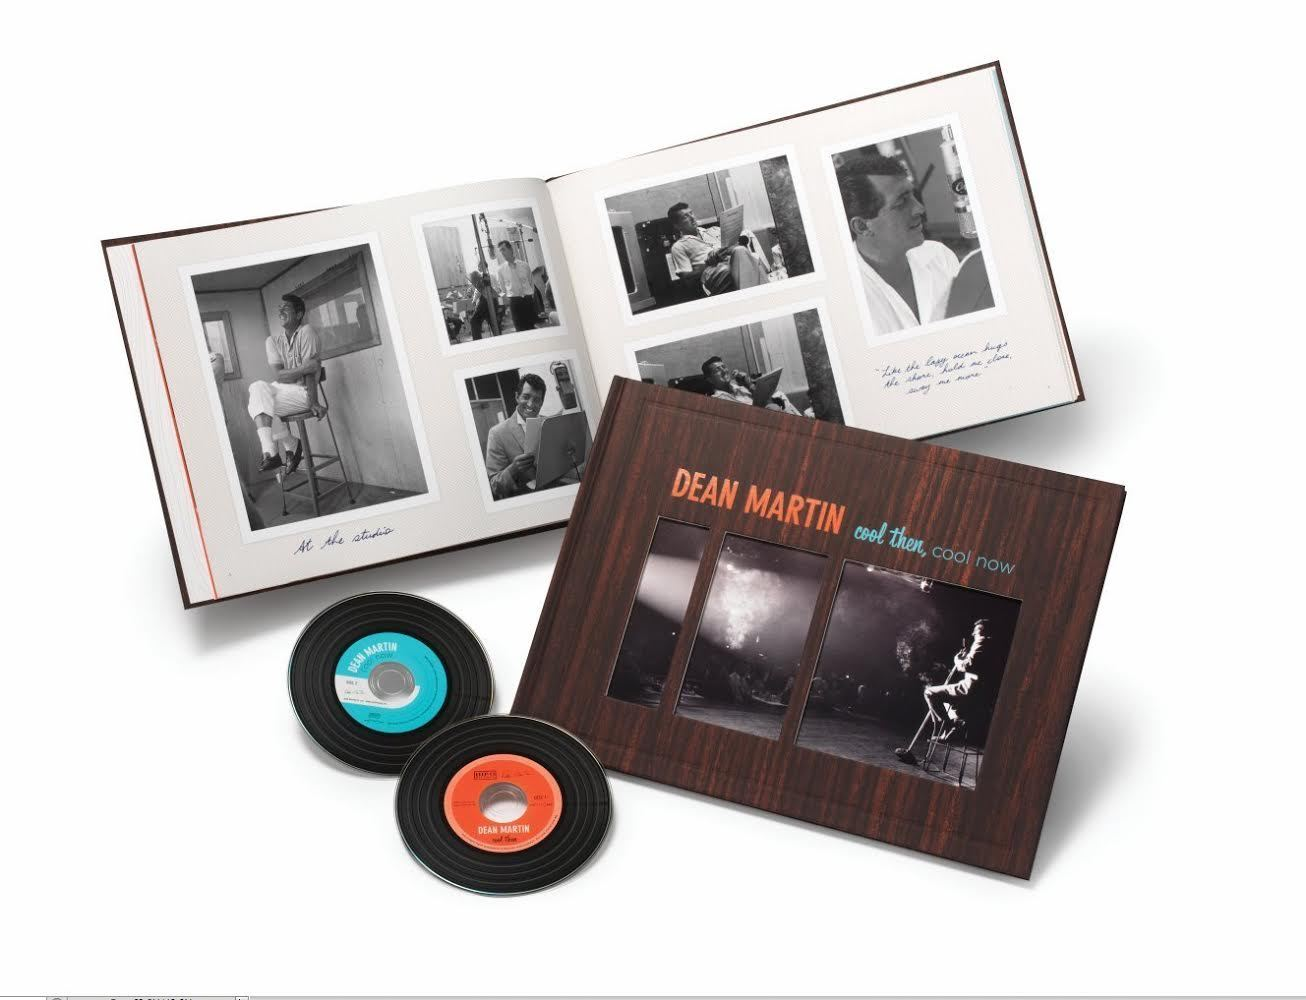 Dean Martin: Cool Then, Cool Now by Dean Martin image